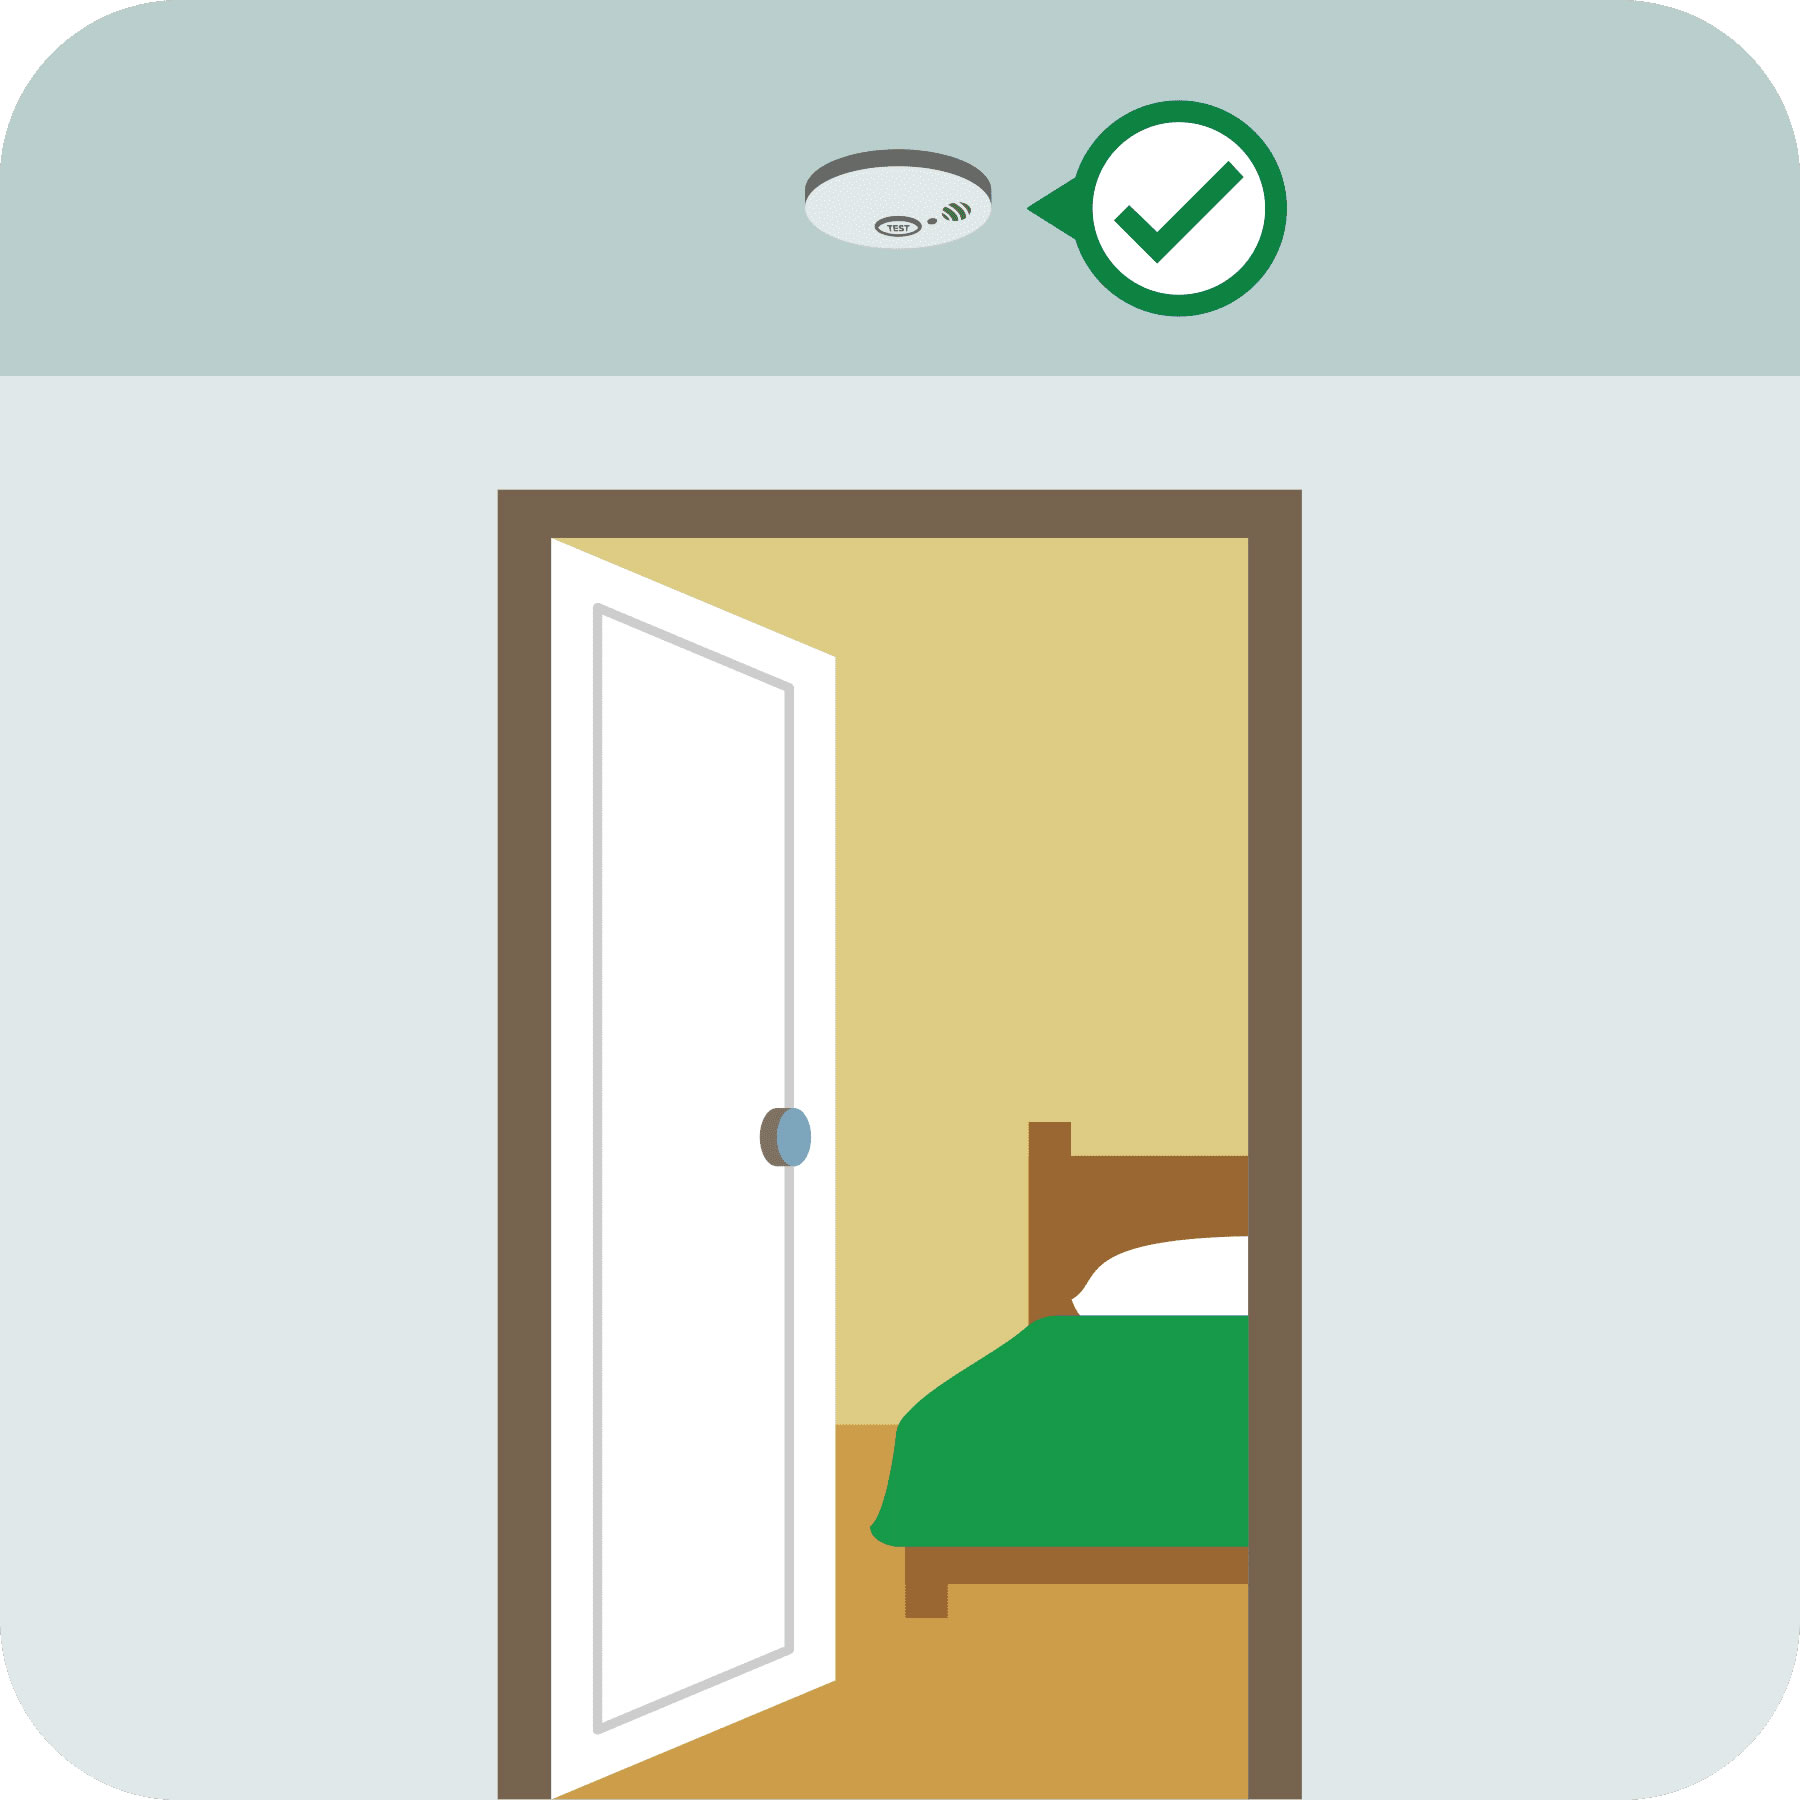 A smoke alarm is properly installed outside an open bedroom door